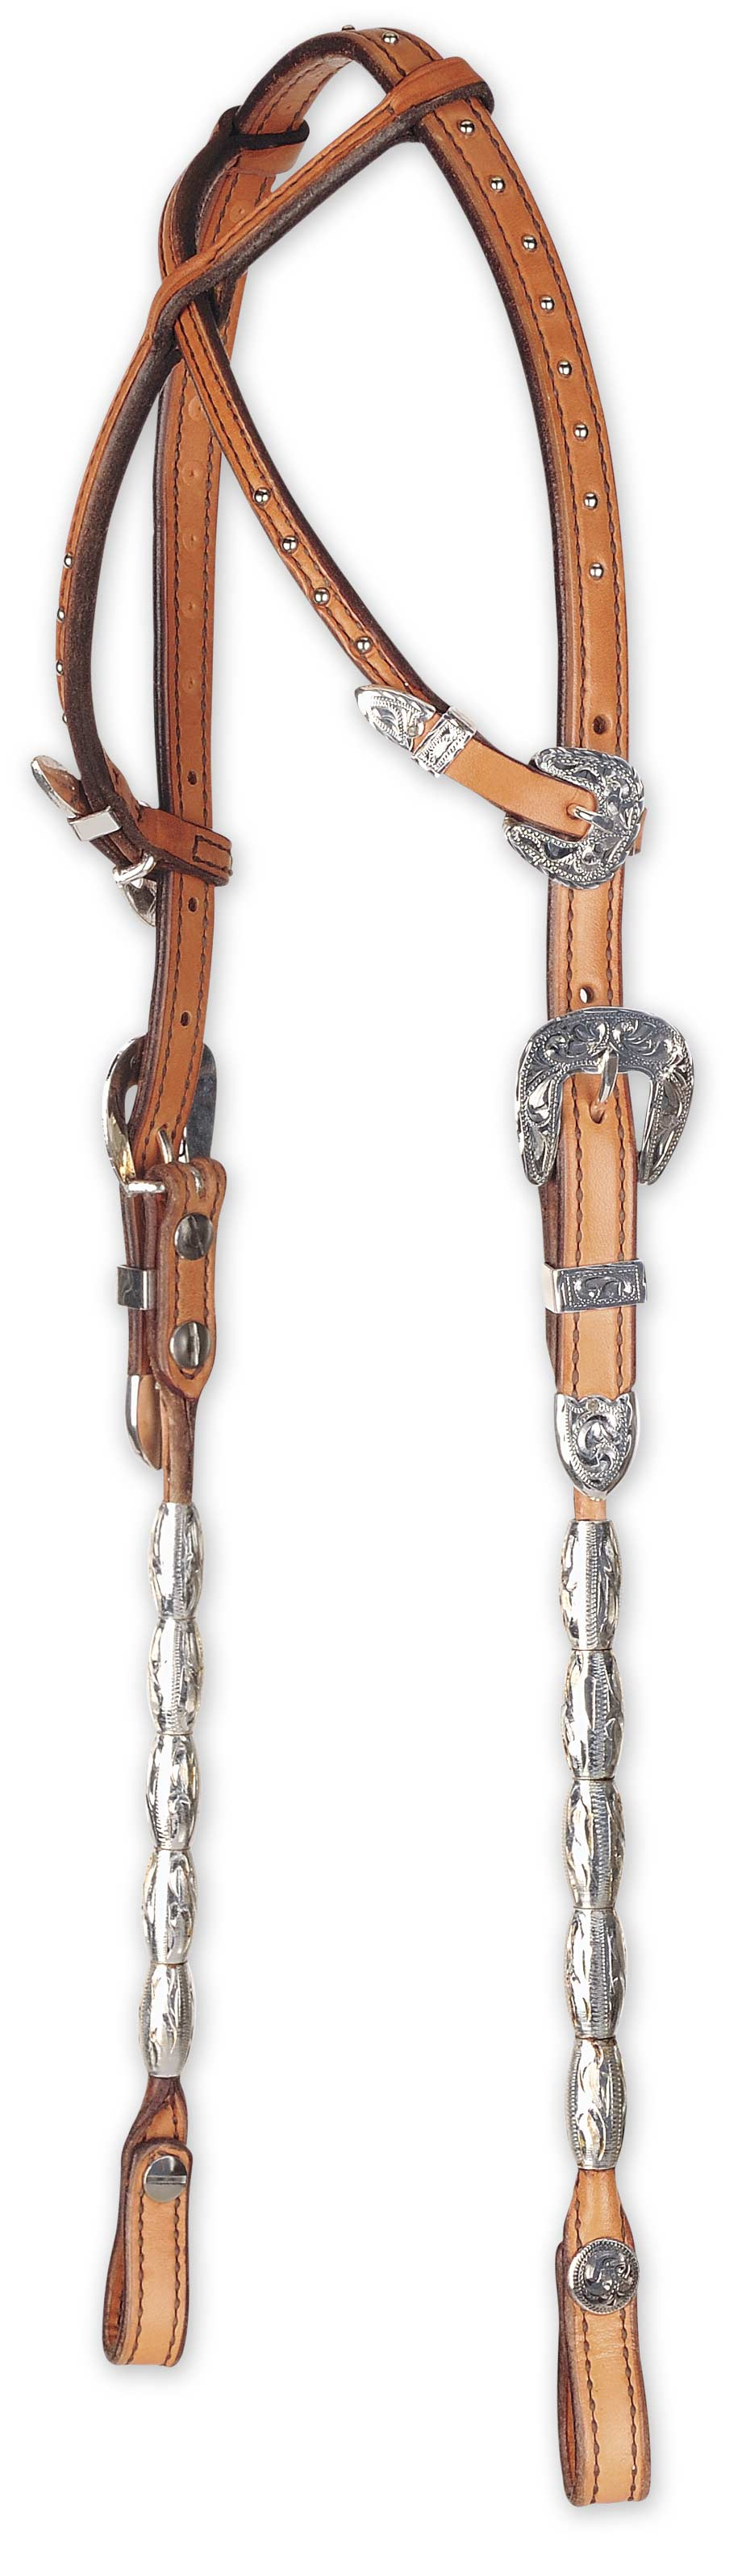 Another cross crown headstall from Hobby Horse Inc.